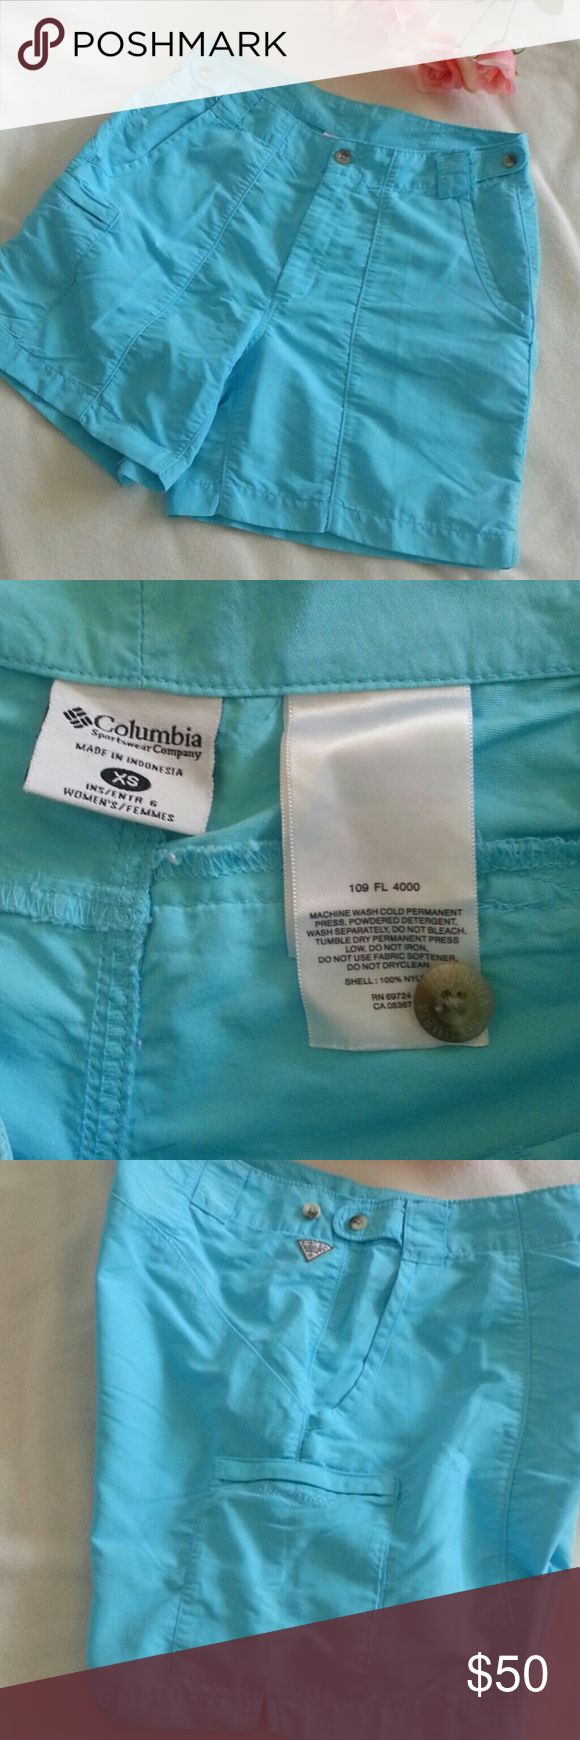 "Columbia XS Blue Shorts PFG Columbia PFG light blue shorts excellent condition Size XS Waist 29.5"" Inseam 5.5"" Hips 36"" Columbia Shorts"